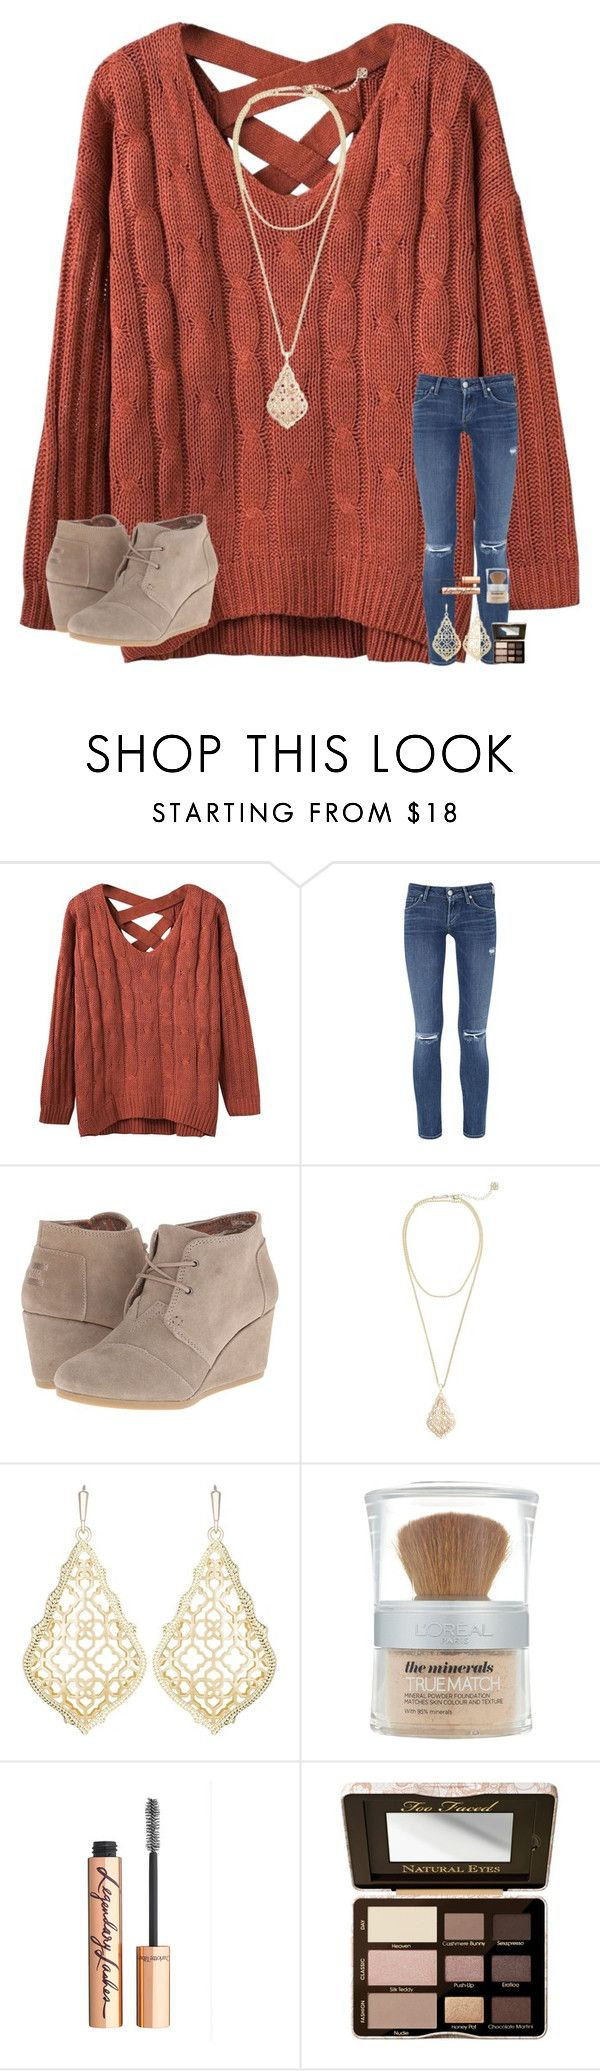 """At the orthodontist "" by mae343 ❤ liked on Polyvore featuring Citizens of Humanity, TOMS, Kendra Scott, L'Oréal Paris, Charlotte Tilbury and Too Faced Cosmetics"